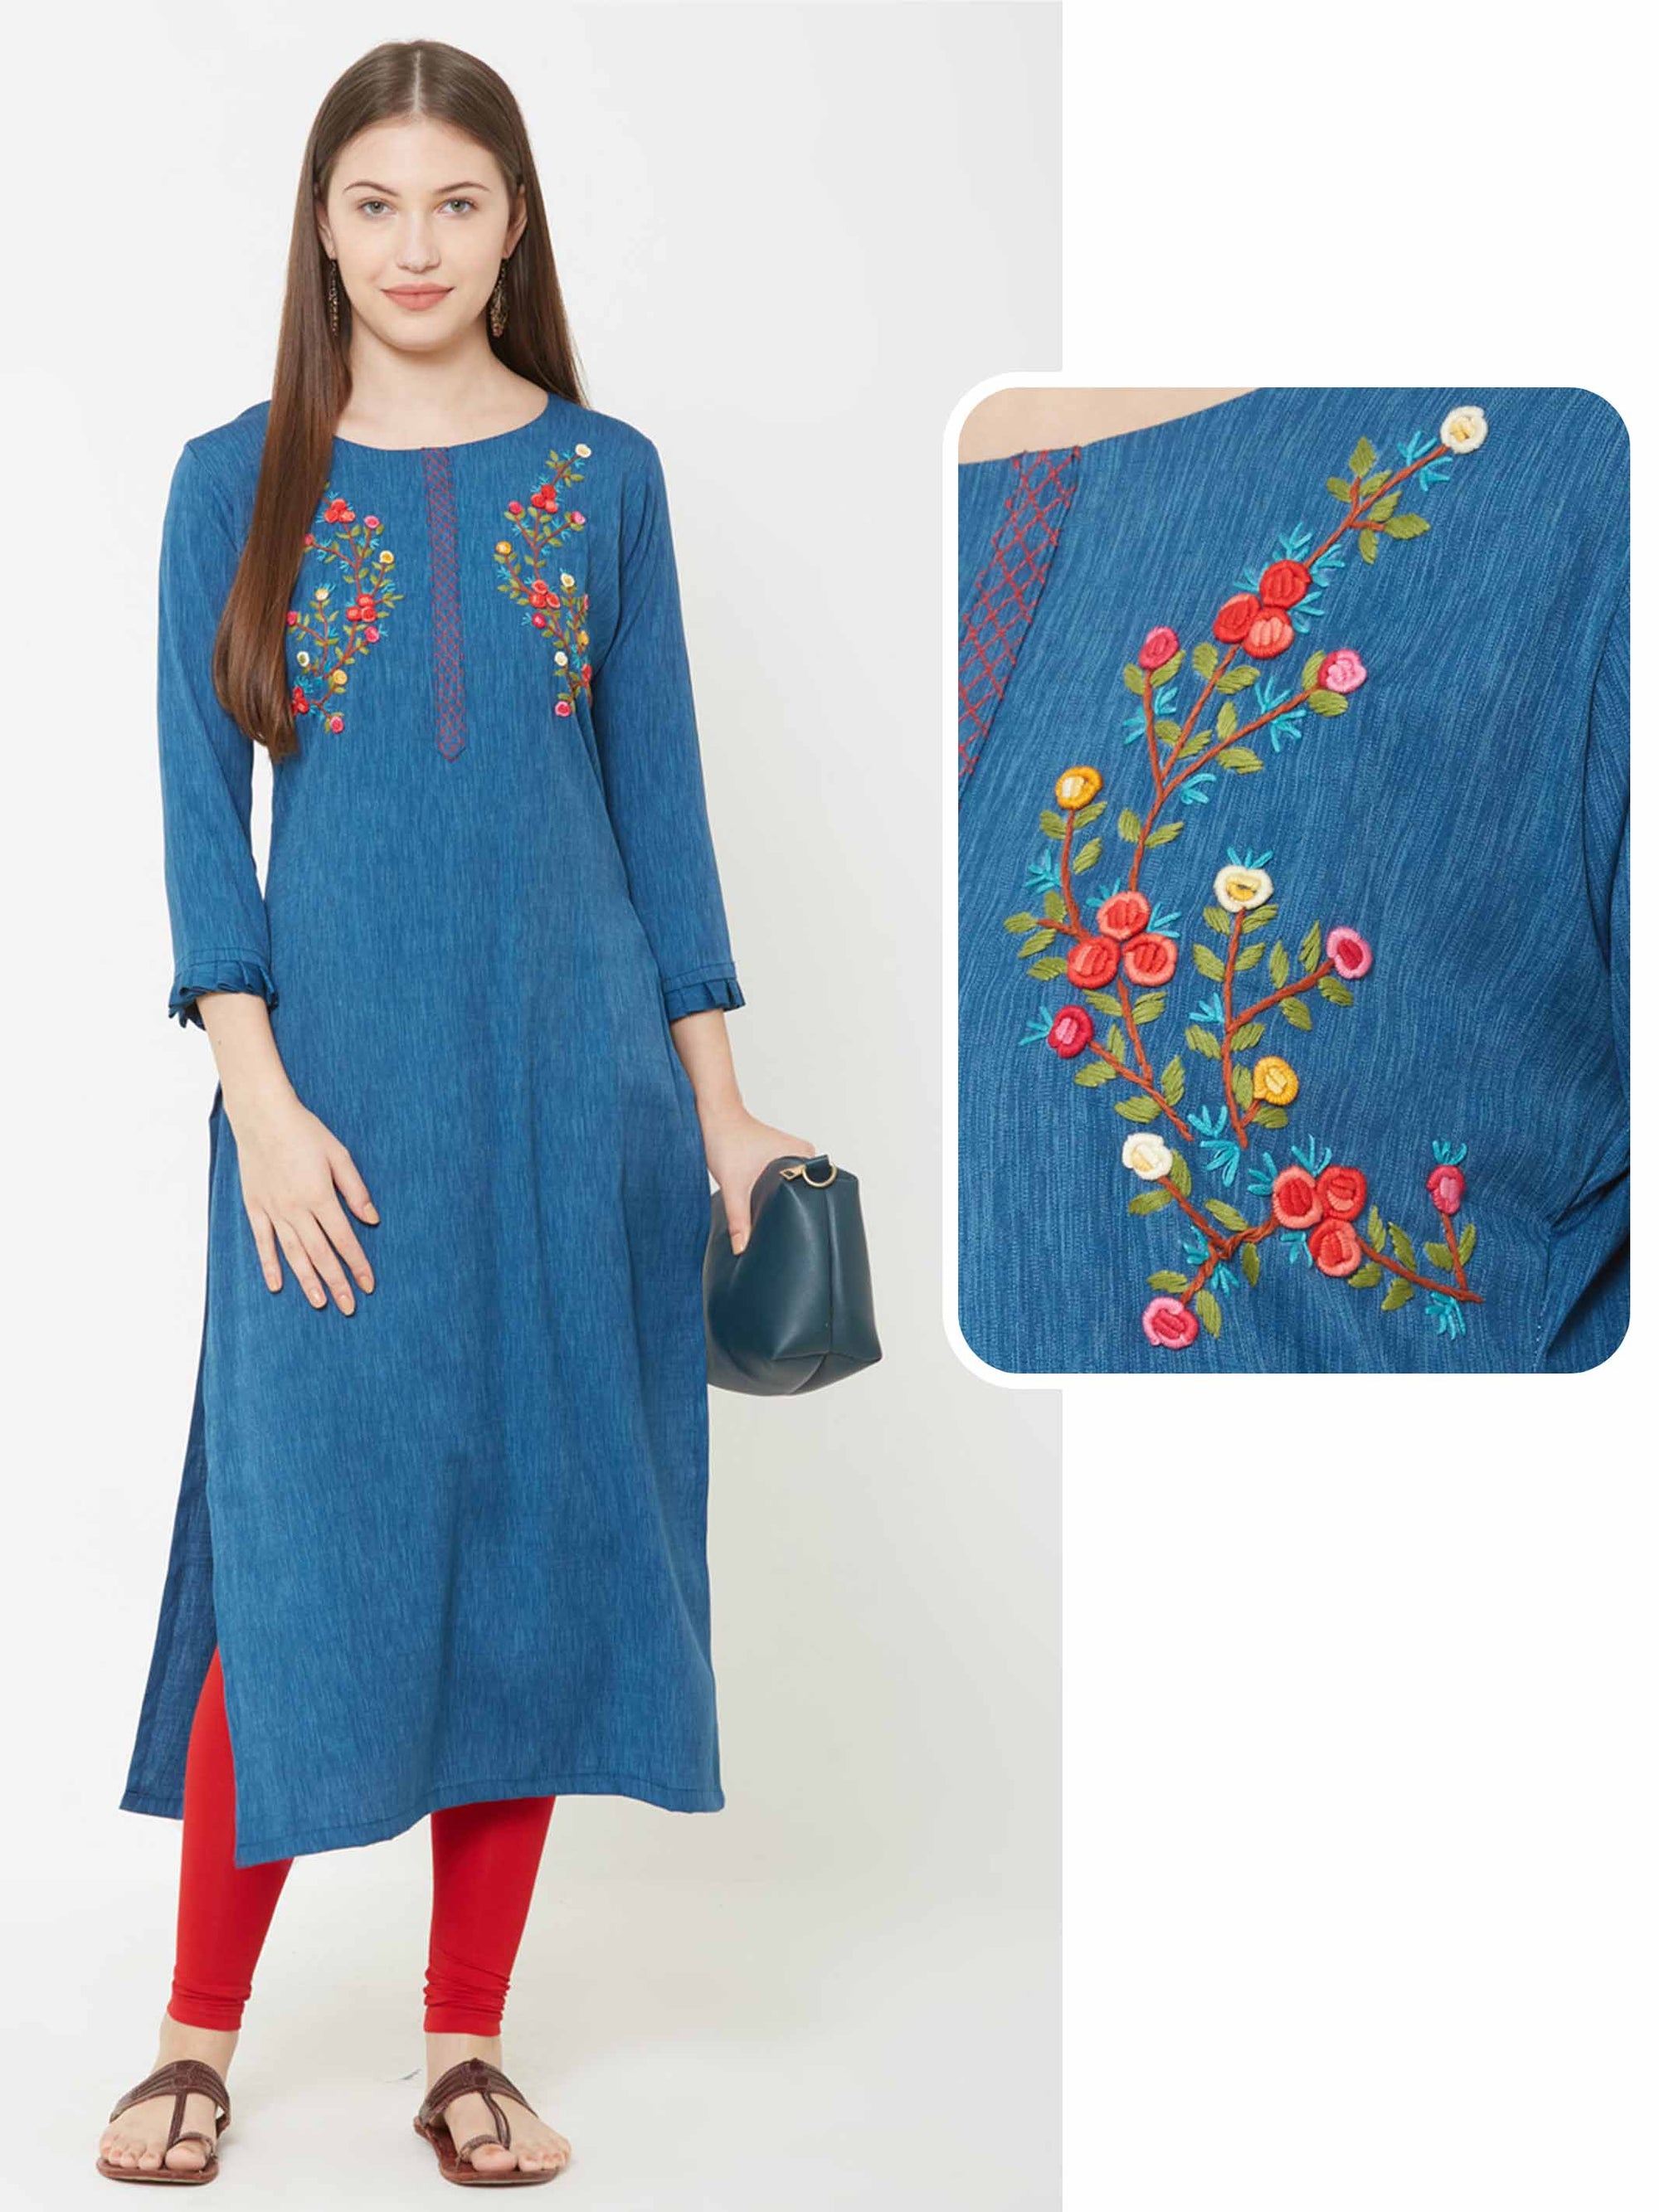 Bullion Knot Floral Embroidered Kurta – Teal Blue